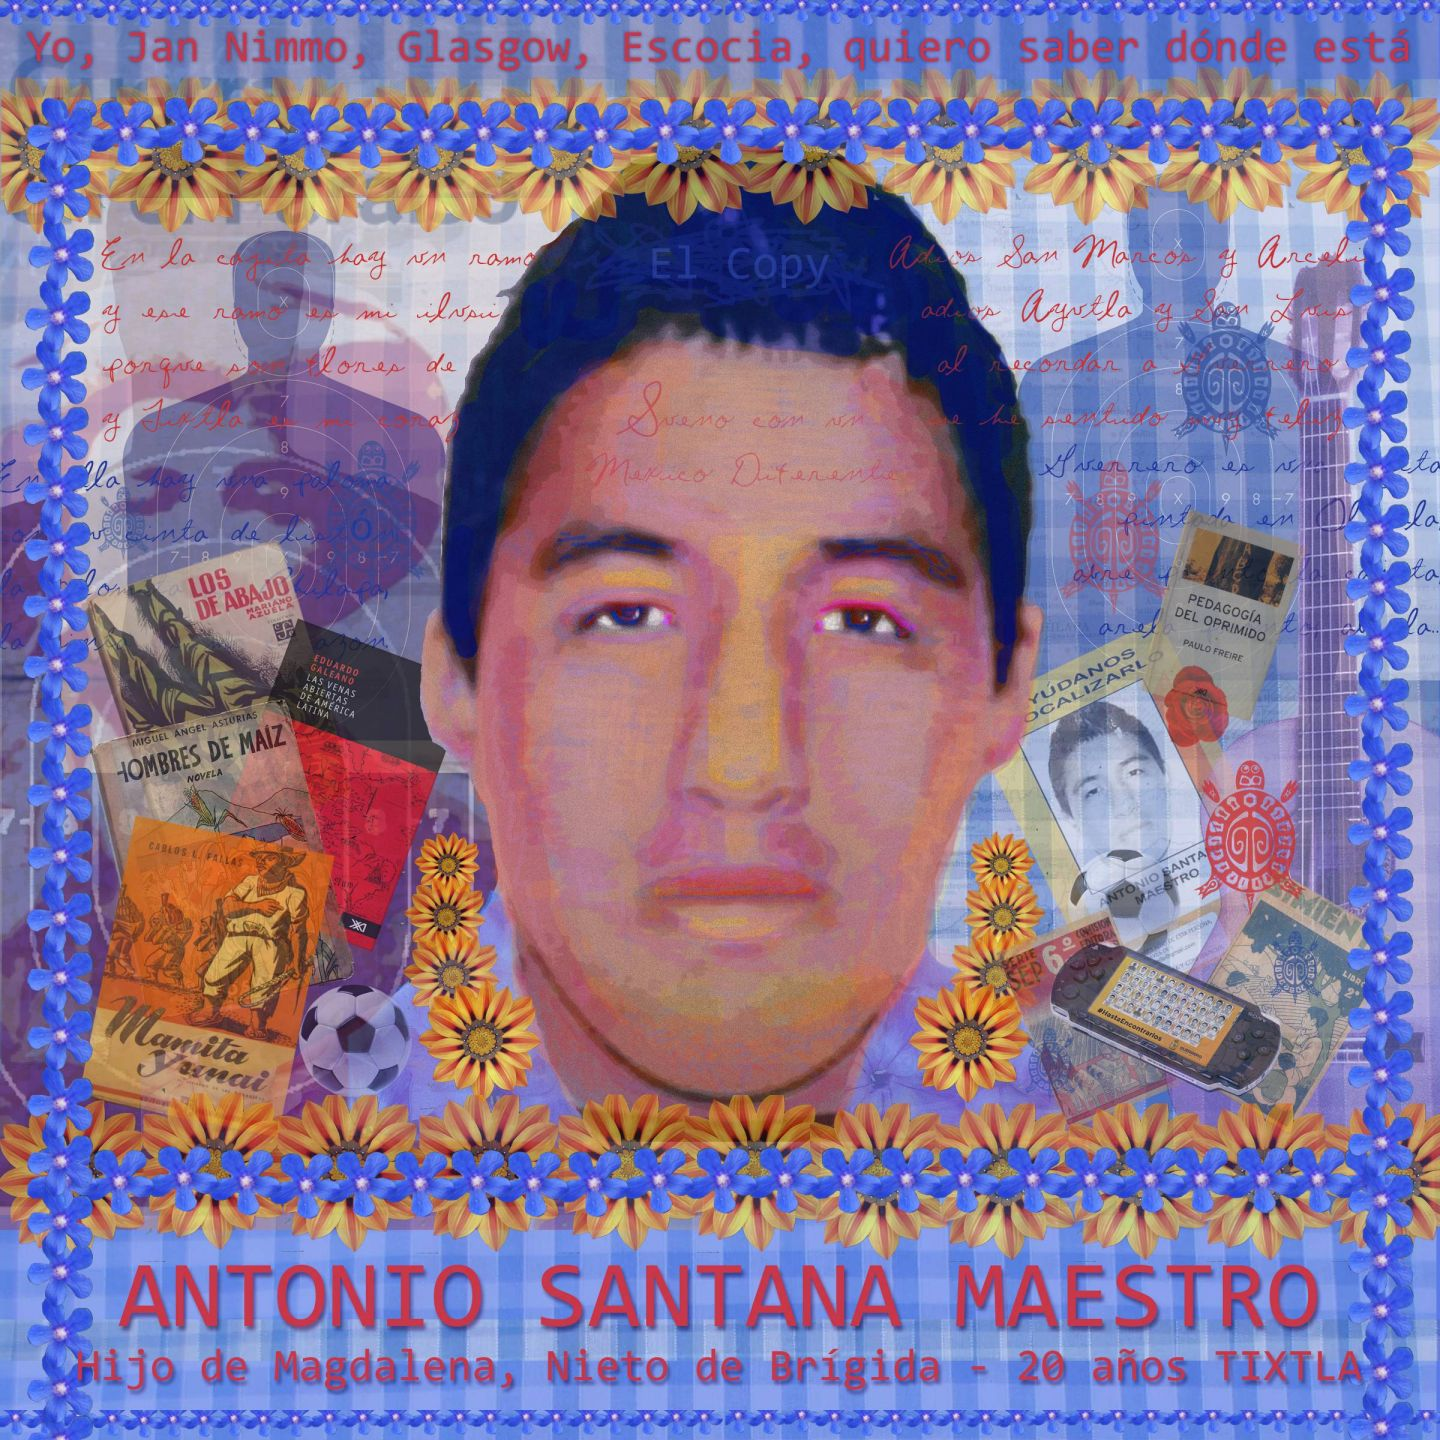 Portrait of Antonio Santana Maestro by Jan Nimo